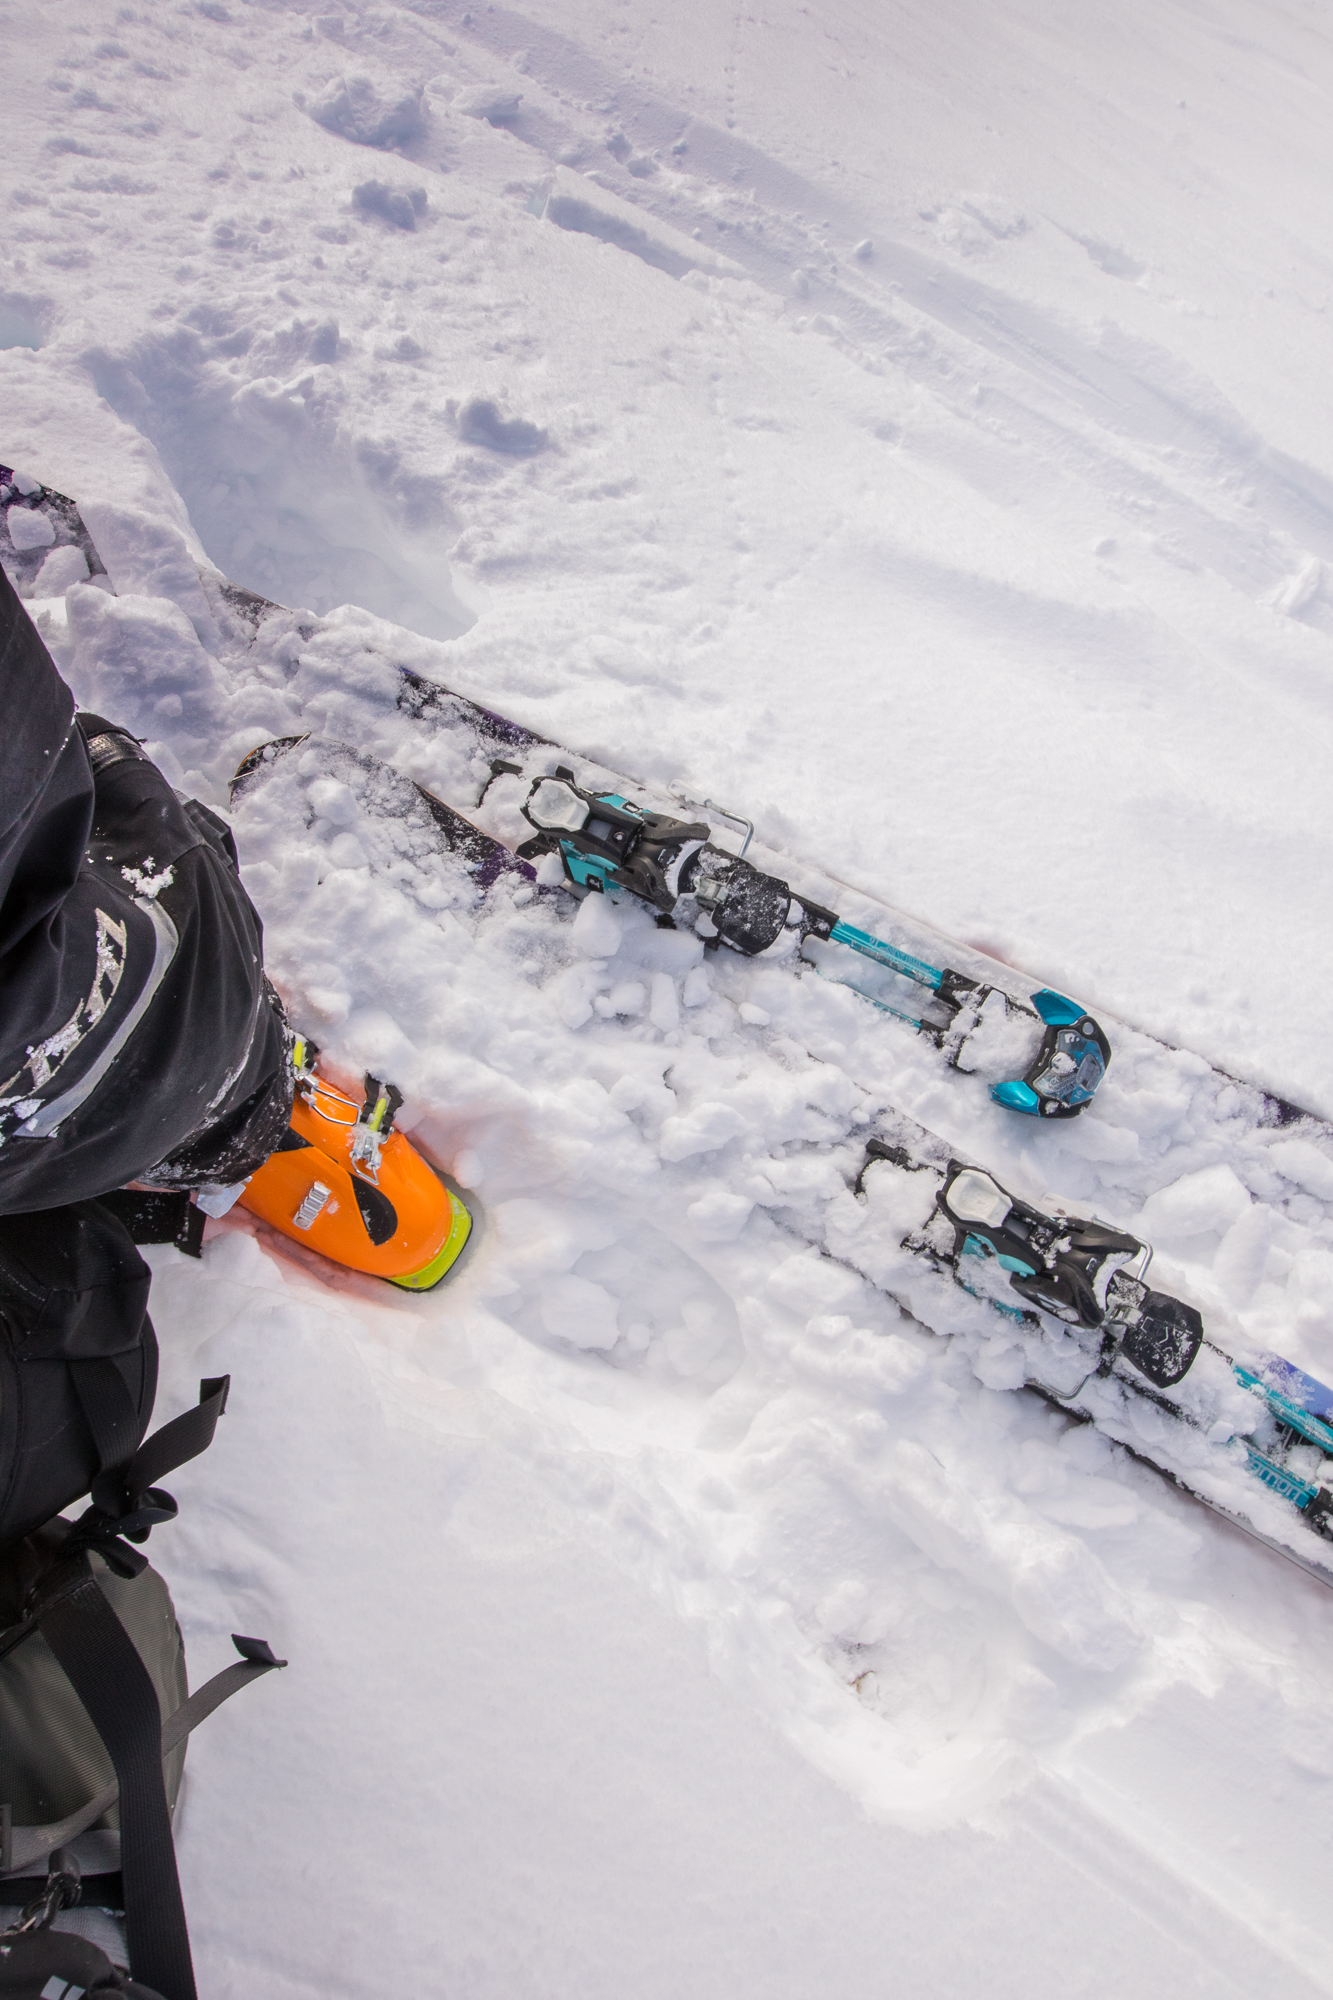 Sled ski touring day in early conditions